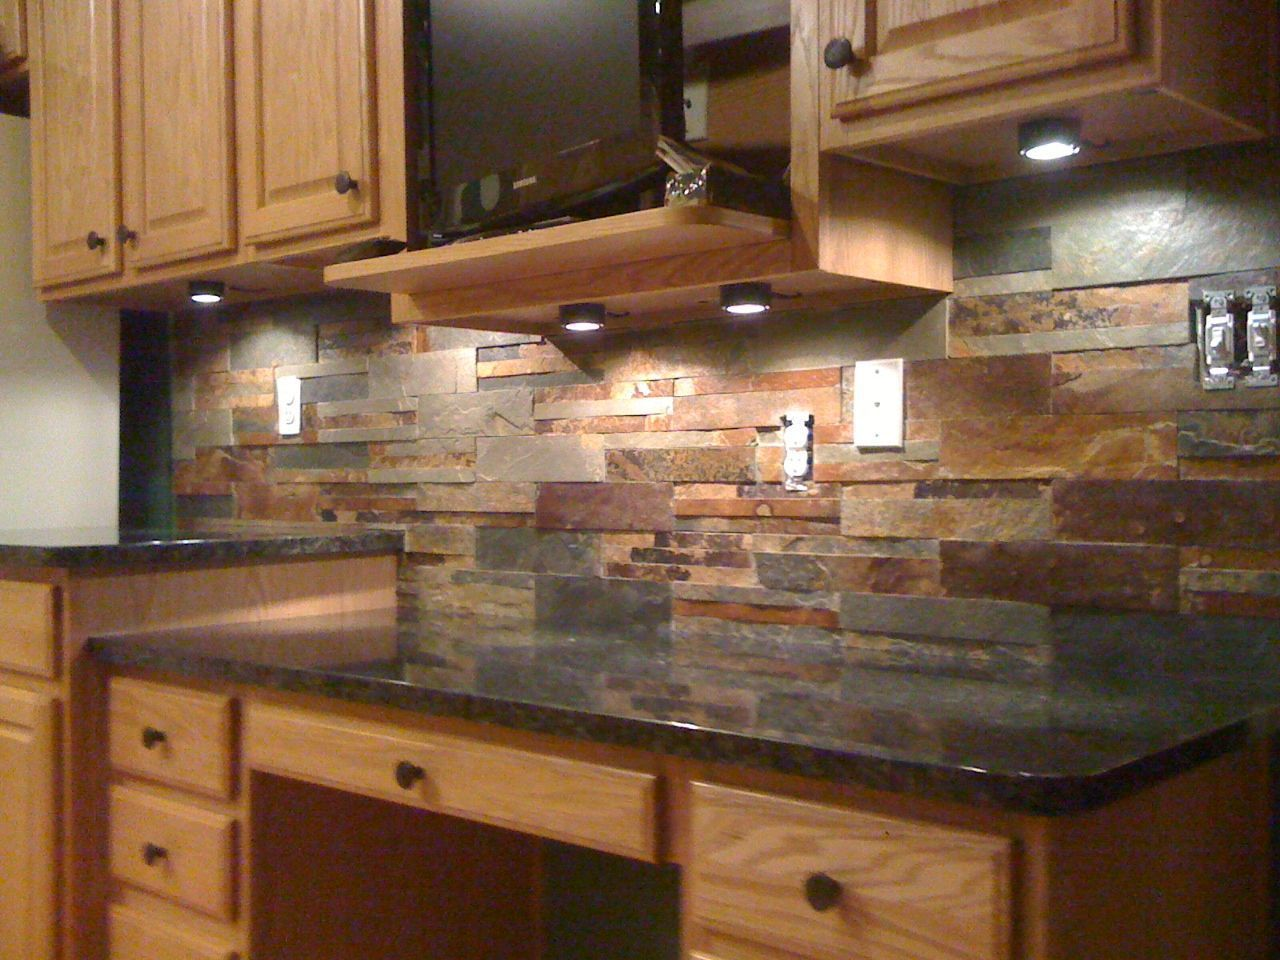 Tile backsplash with granite countertops kitchen remodel Backsplash ideas quartz countertops